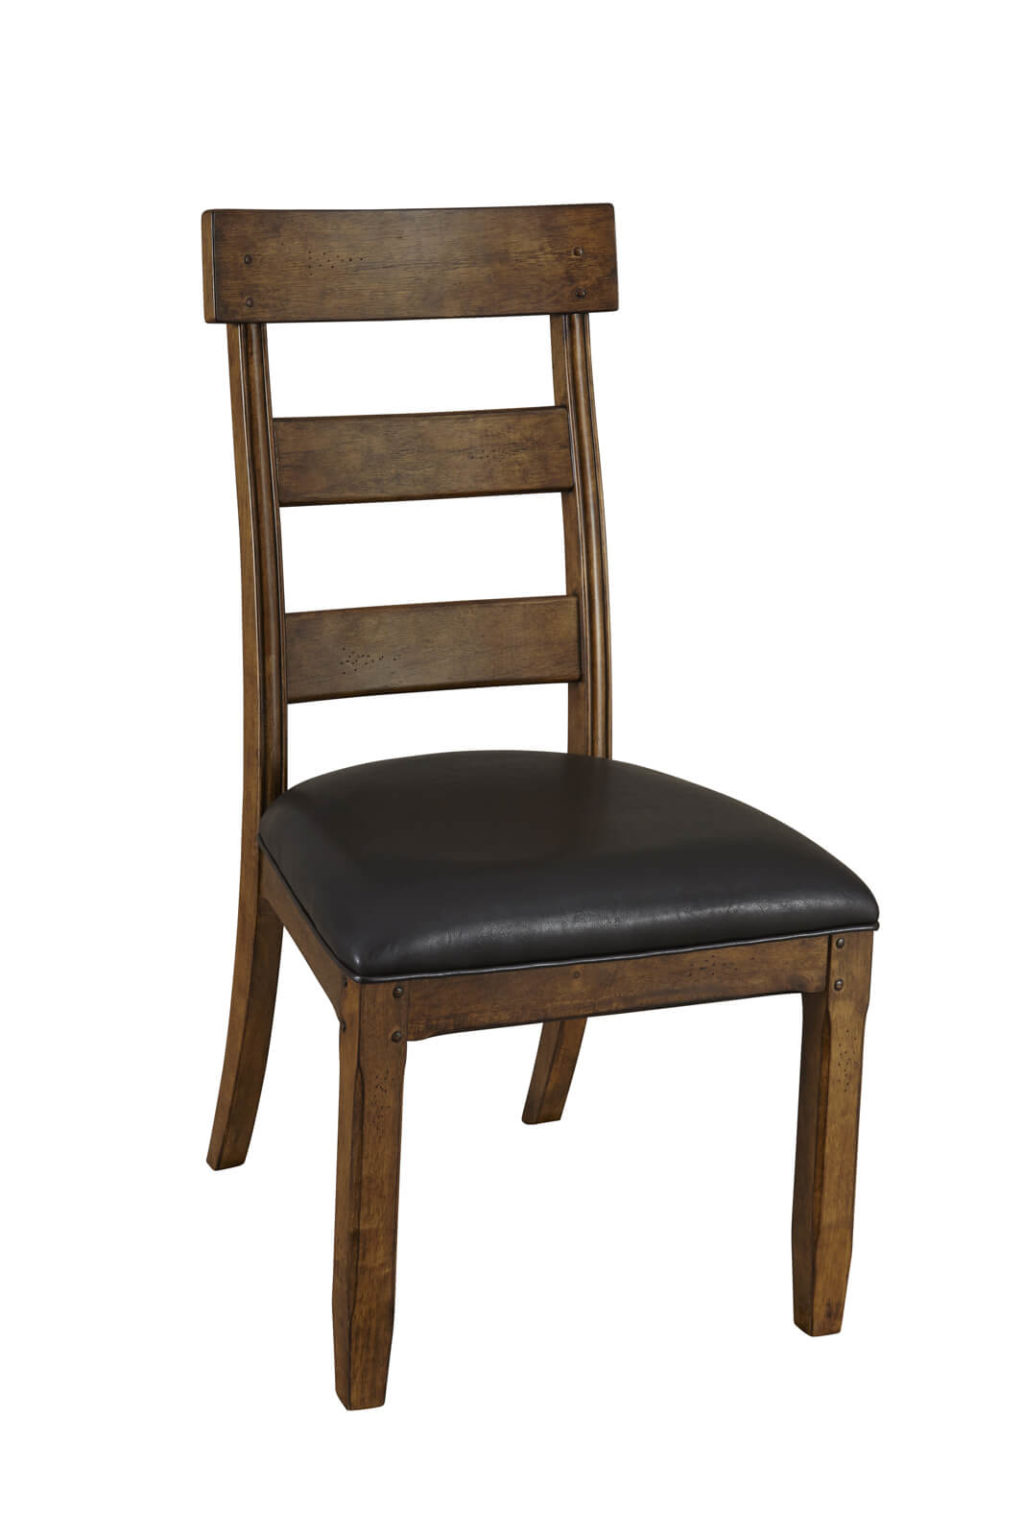 AAmerica Ozark Chair Without Arms